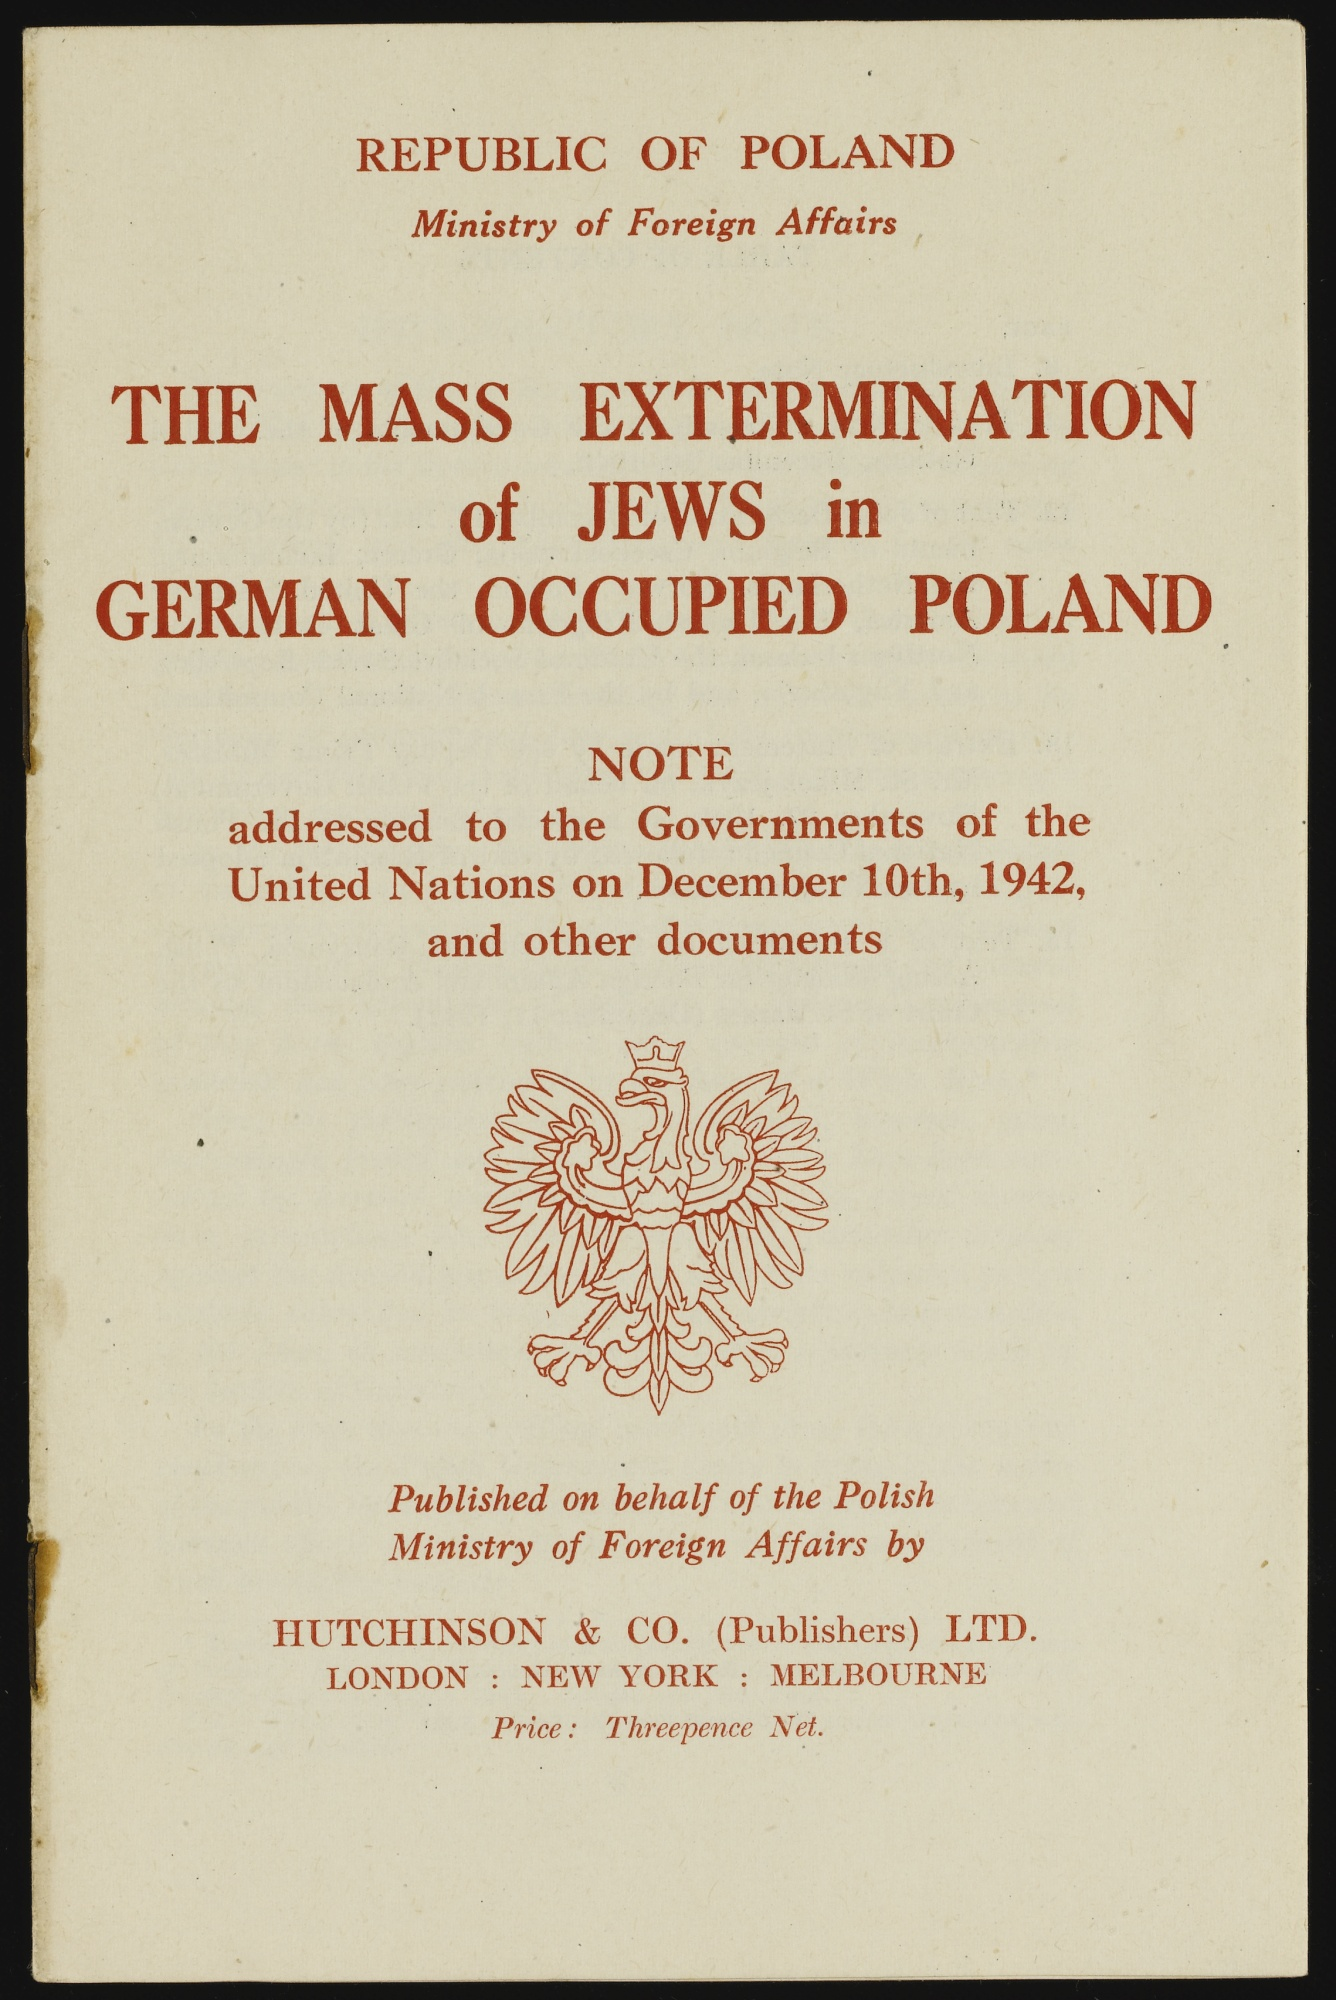 1942 1943 essay from legend letter modernity occupied poland